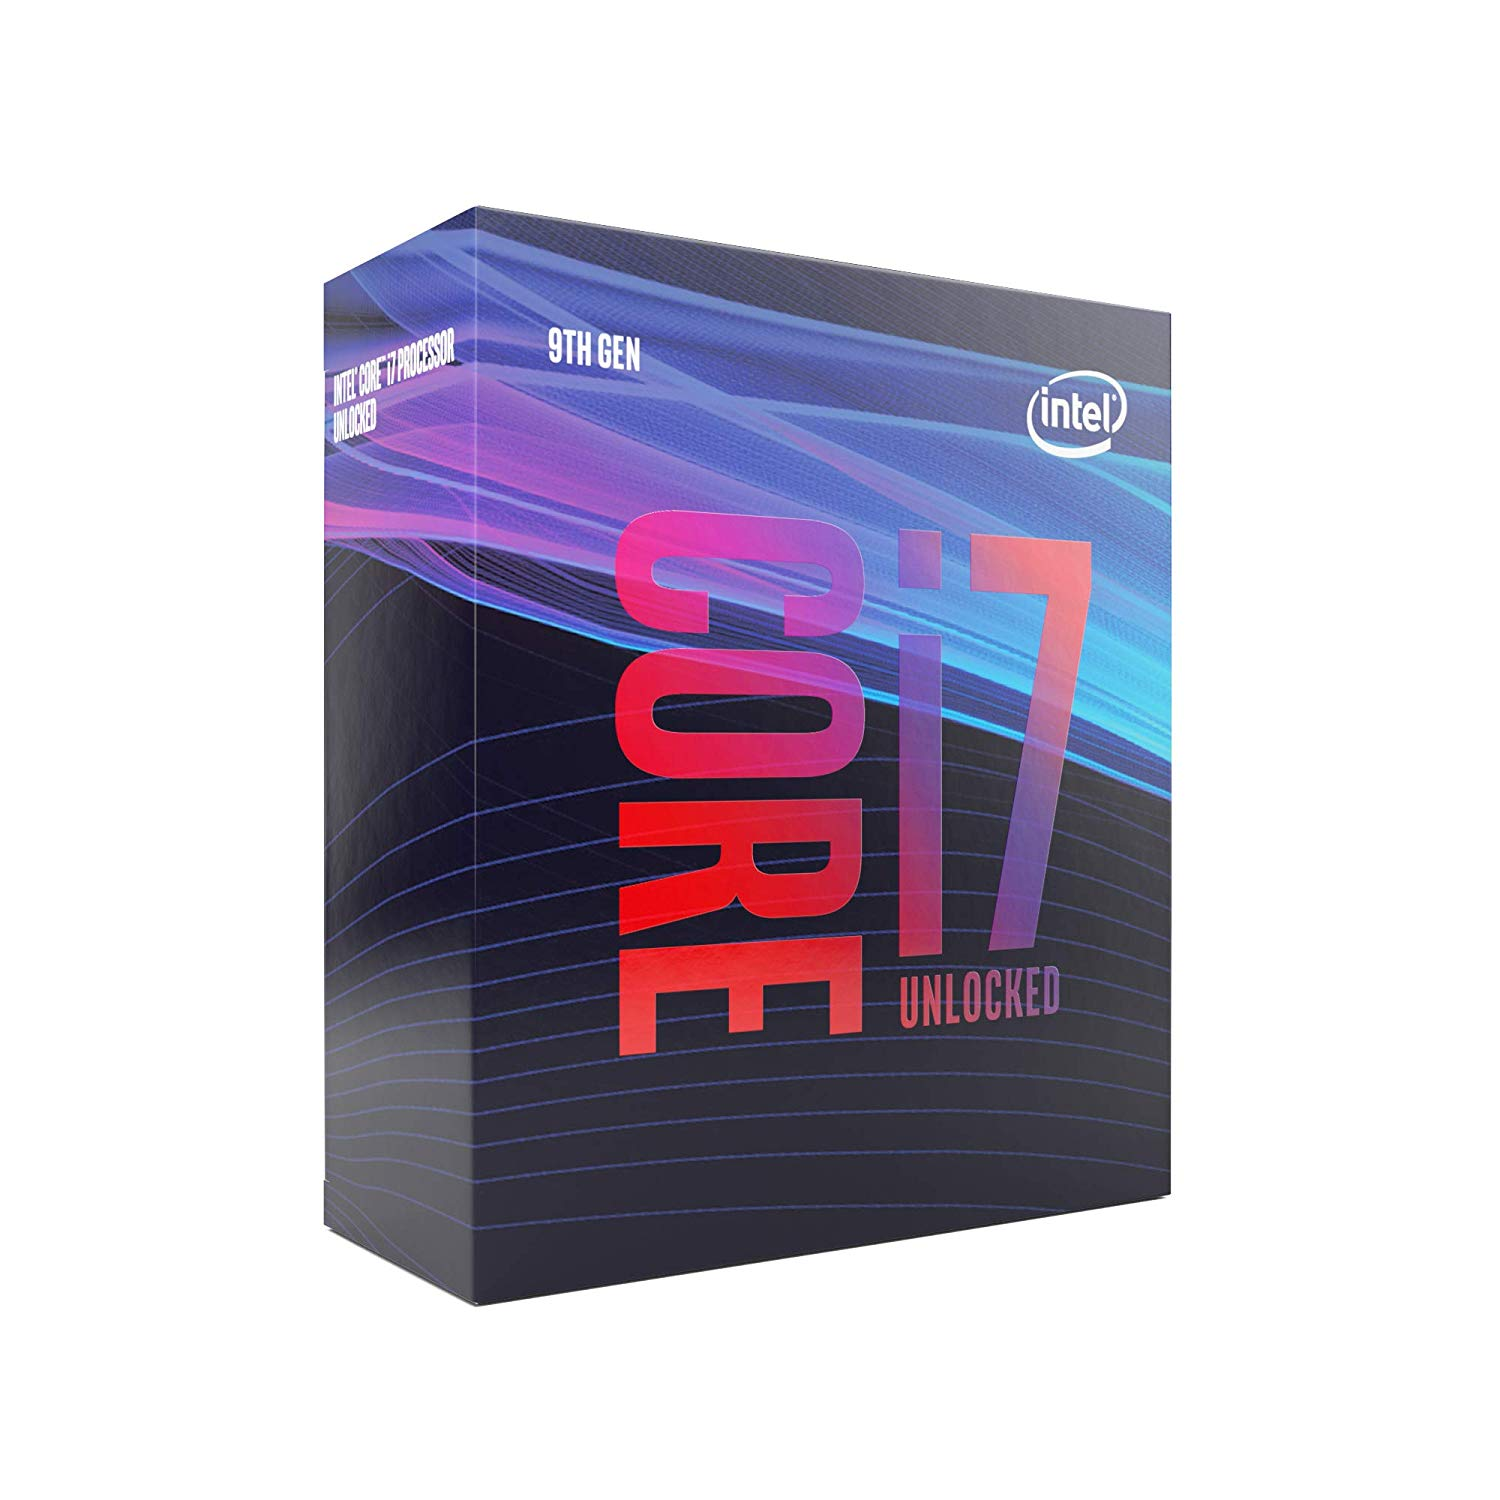 CPU Intel Core i7 9700K (Up to 4.90Ghz/ 12Mb cache) Coffee Lake